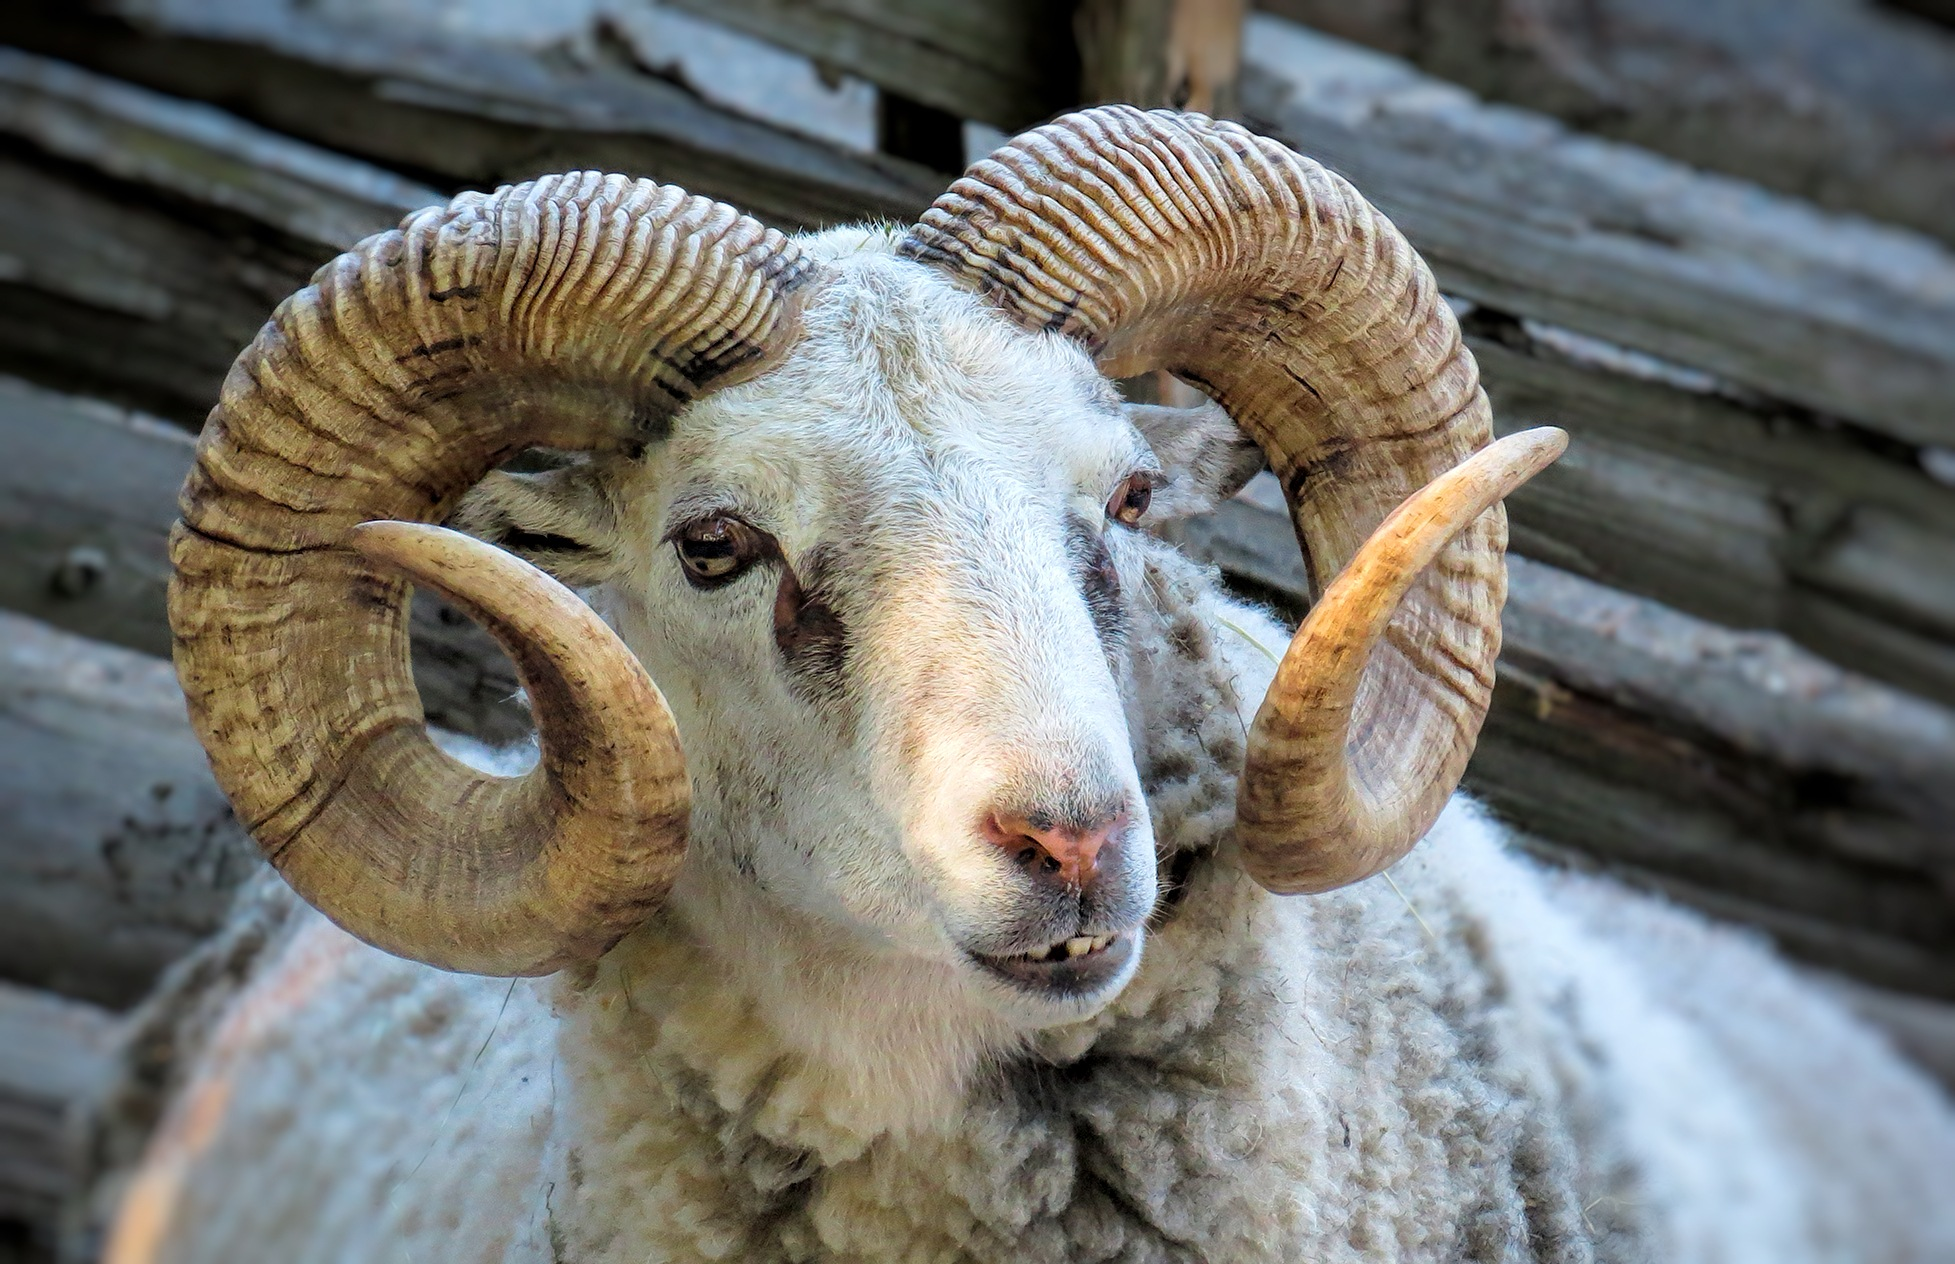 Gotland Sheep by susanne.m.andersson.92